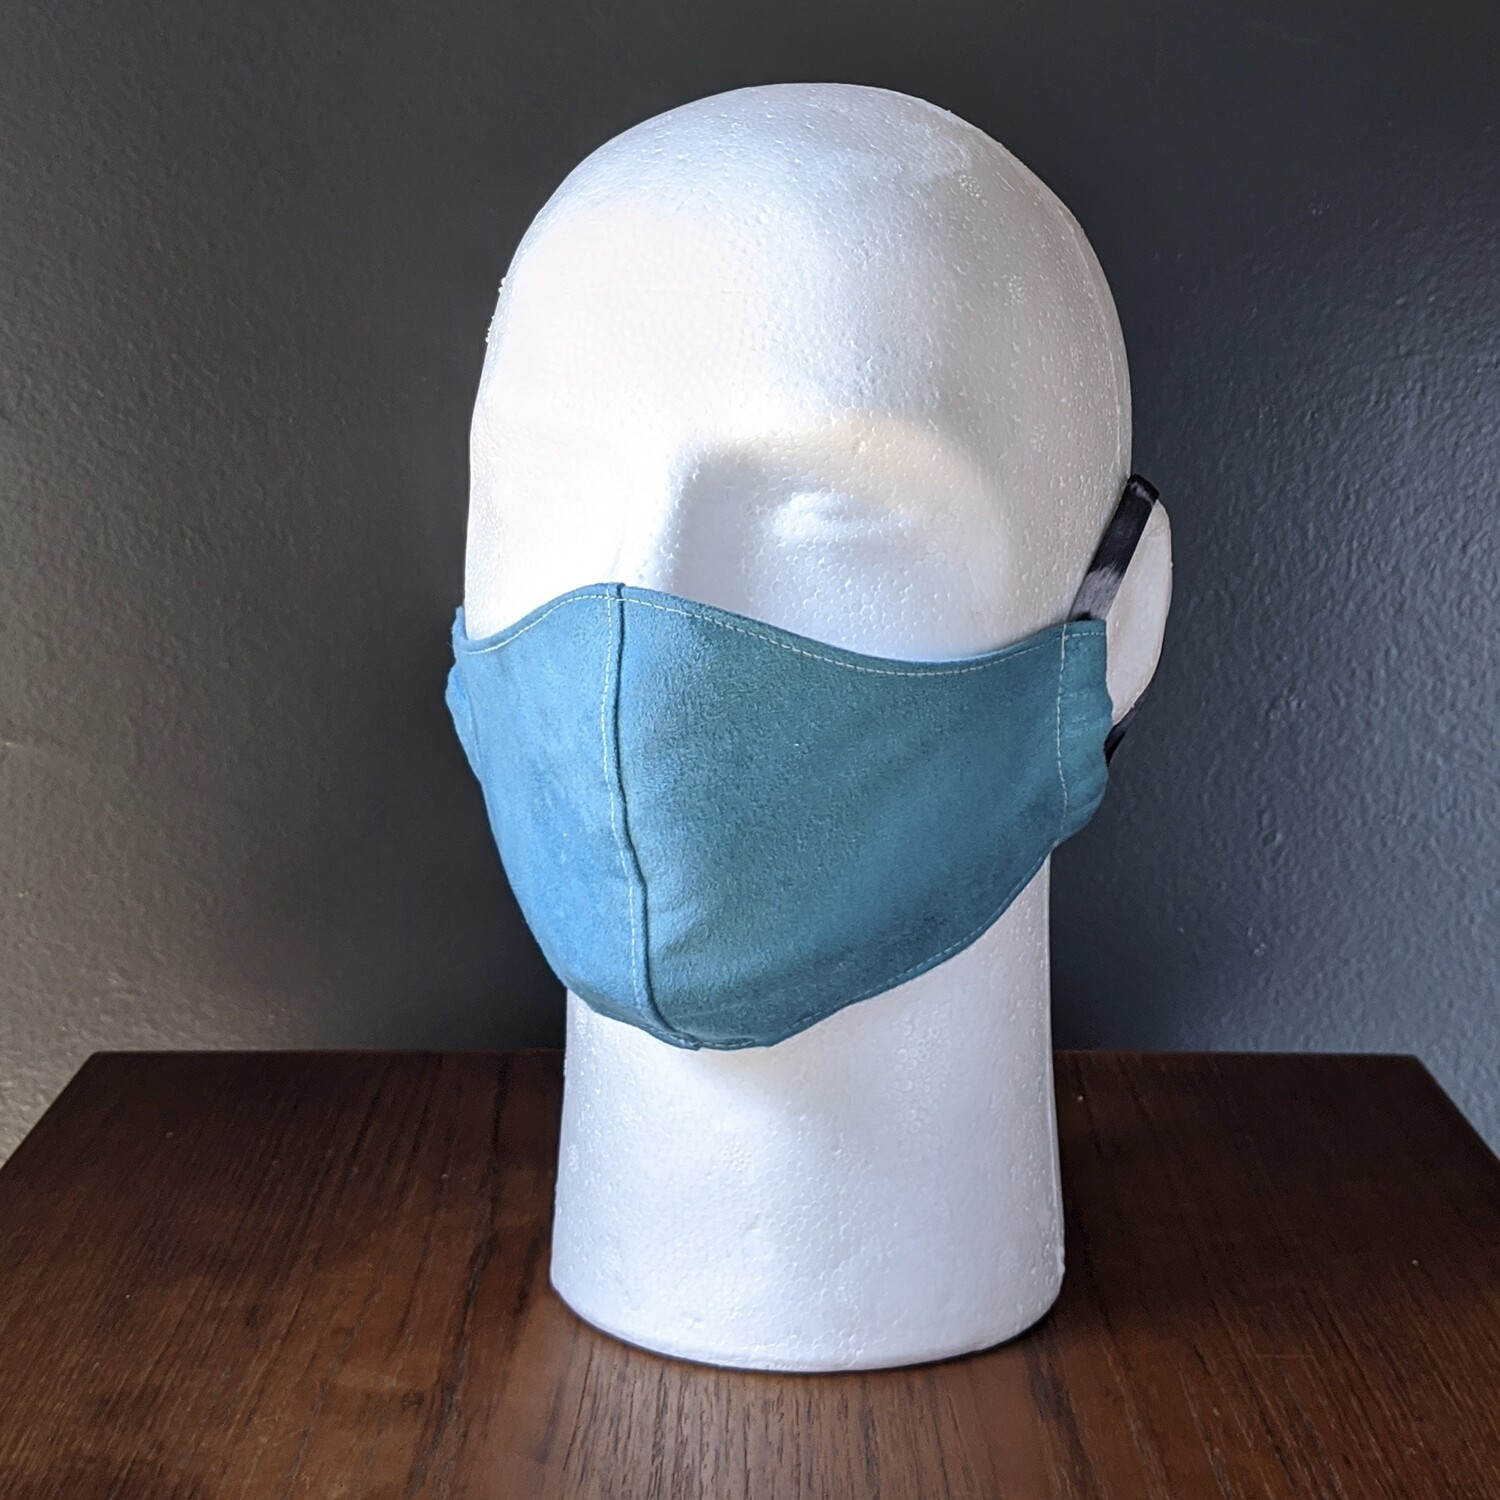 Blue Suede Costume Face Mask, Pride, Mardi Gras, Halloween. Small, Unisex, Reusable, Double Layer for Smog, Pollen, Dust, Smoke. Made in USA